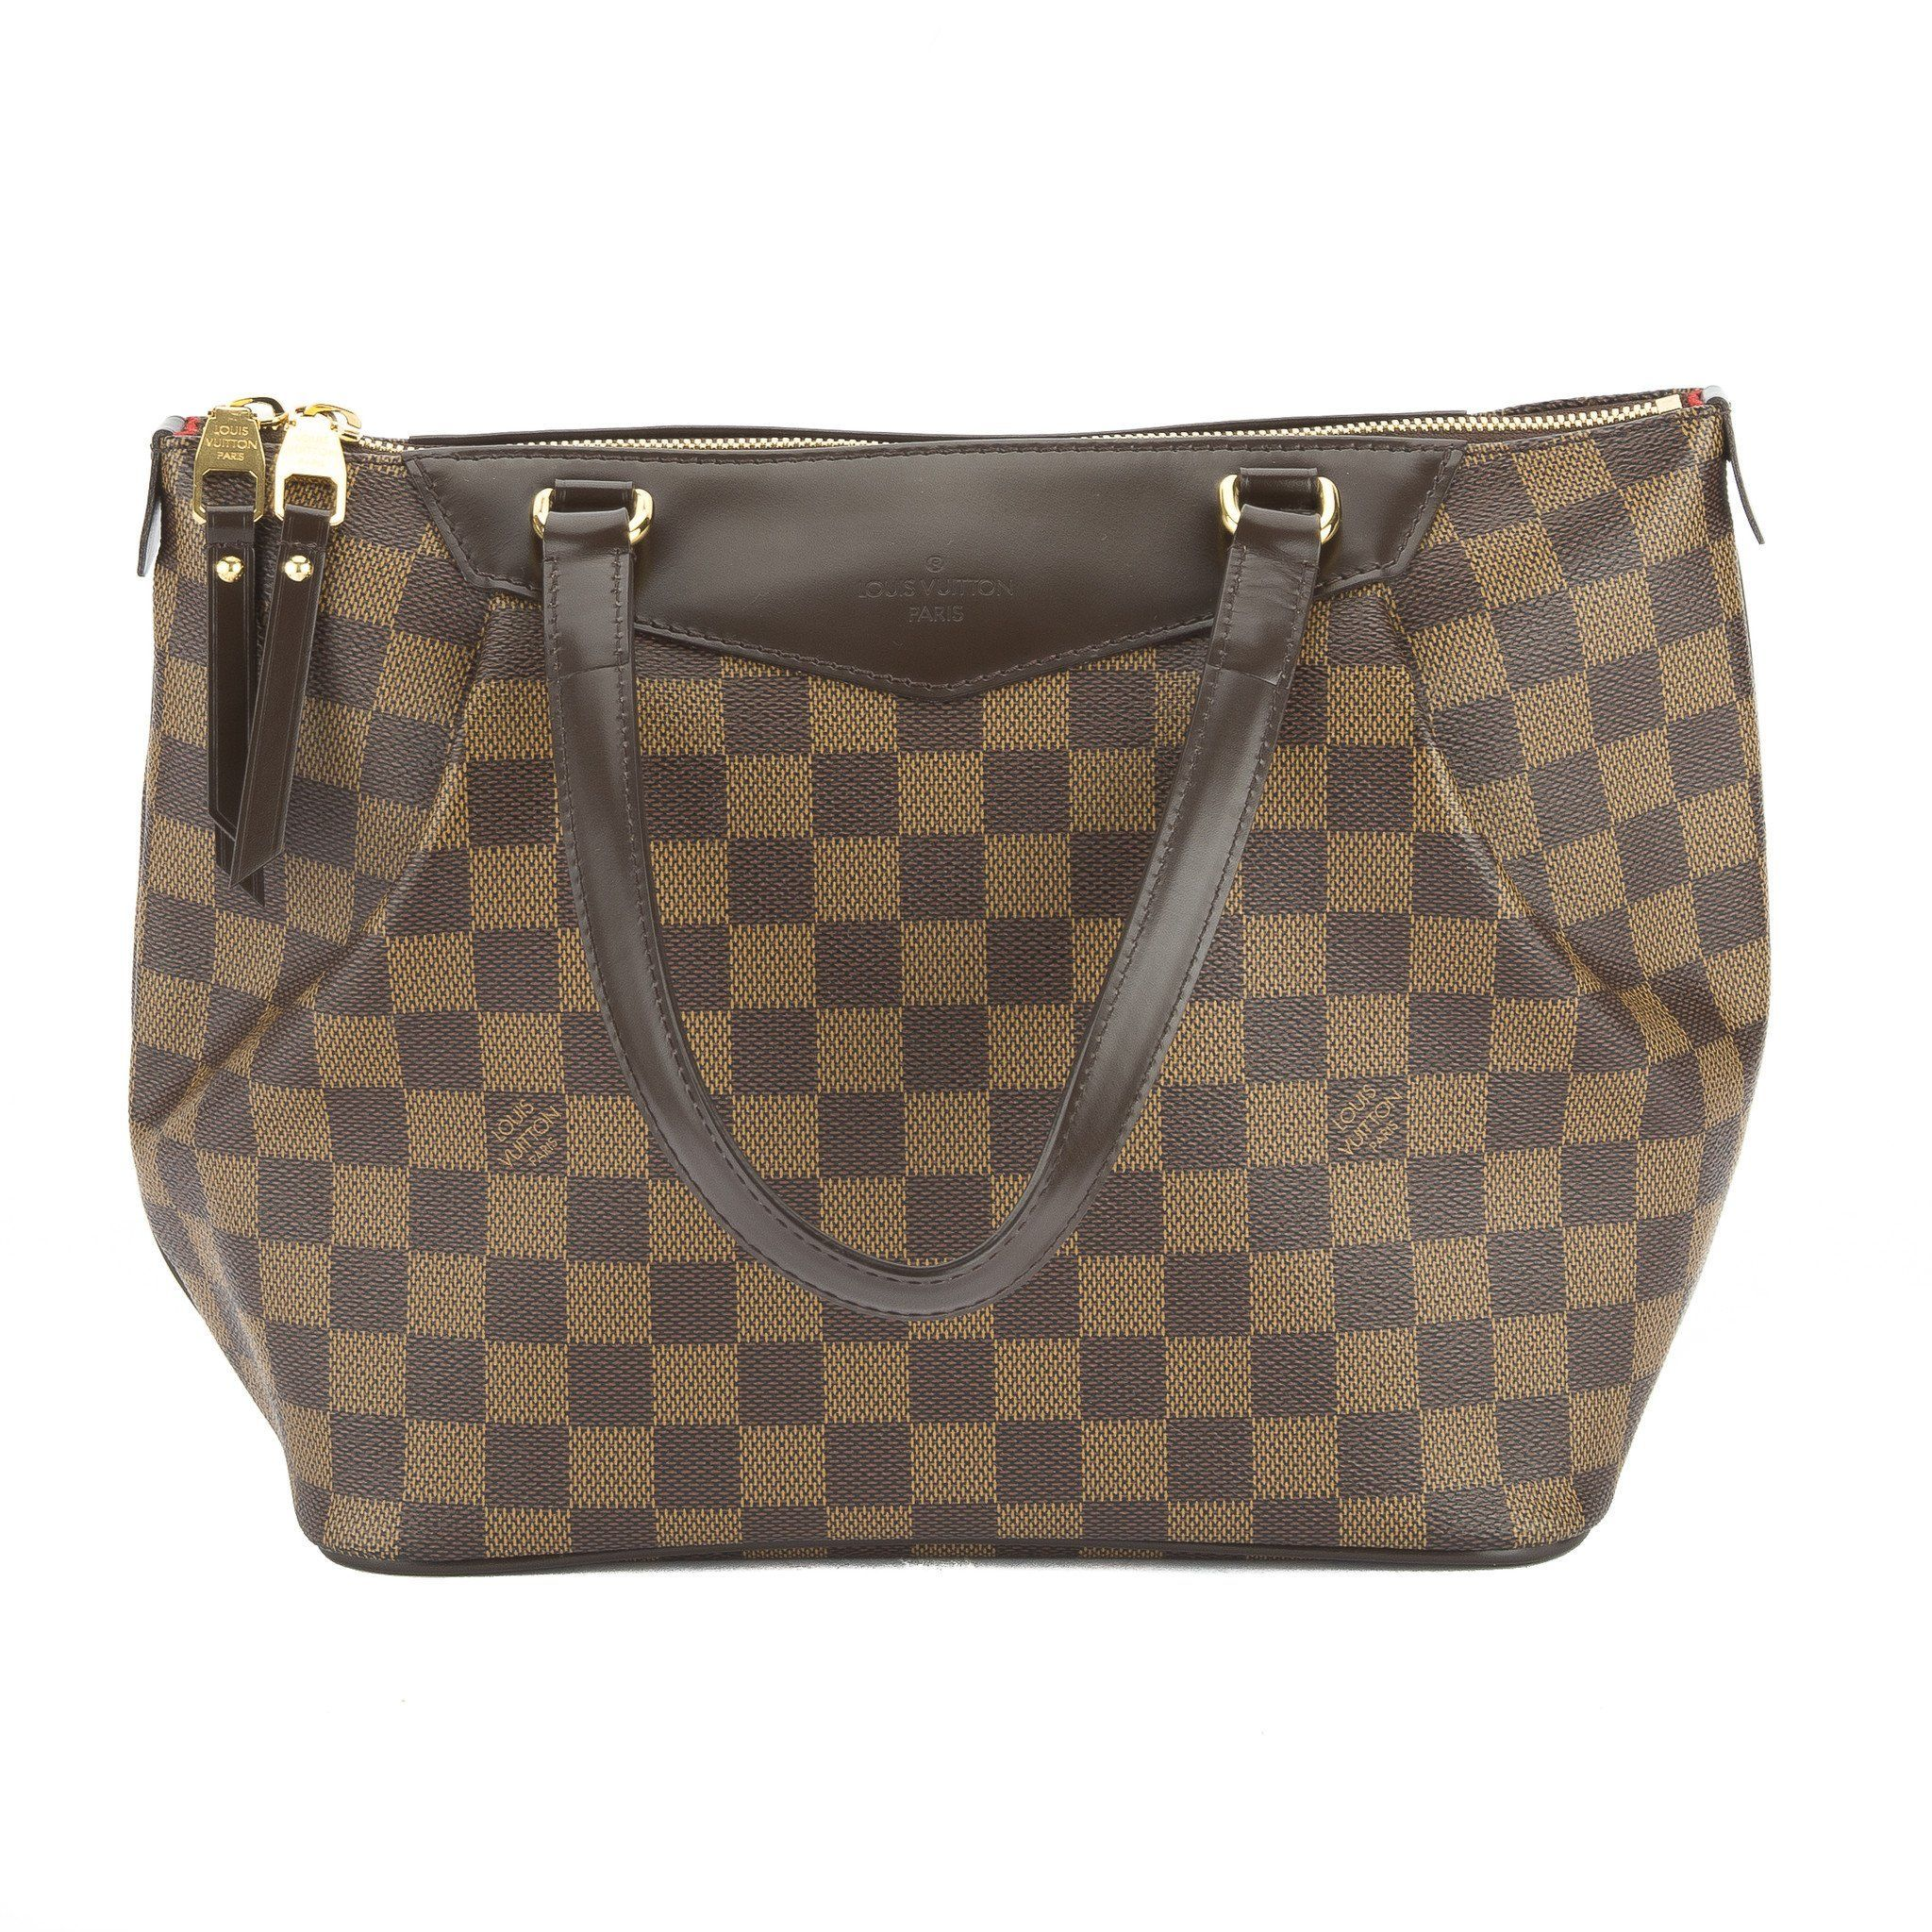 Louis Vuitton Damier Ebene Westminster Pm Bag Pre Owned